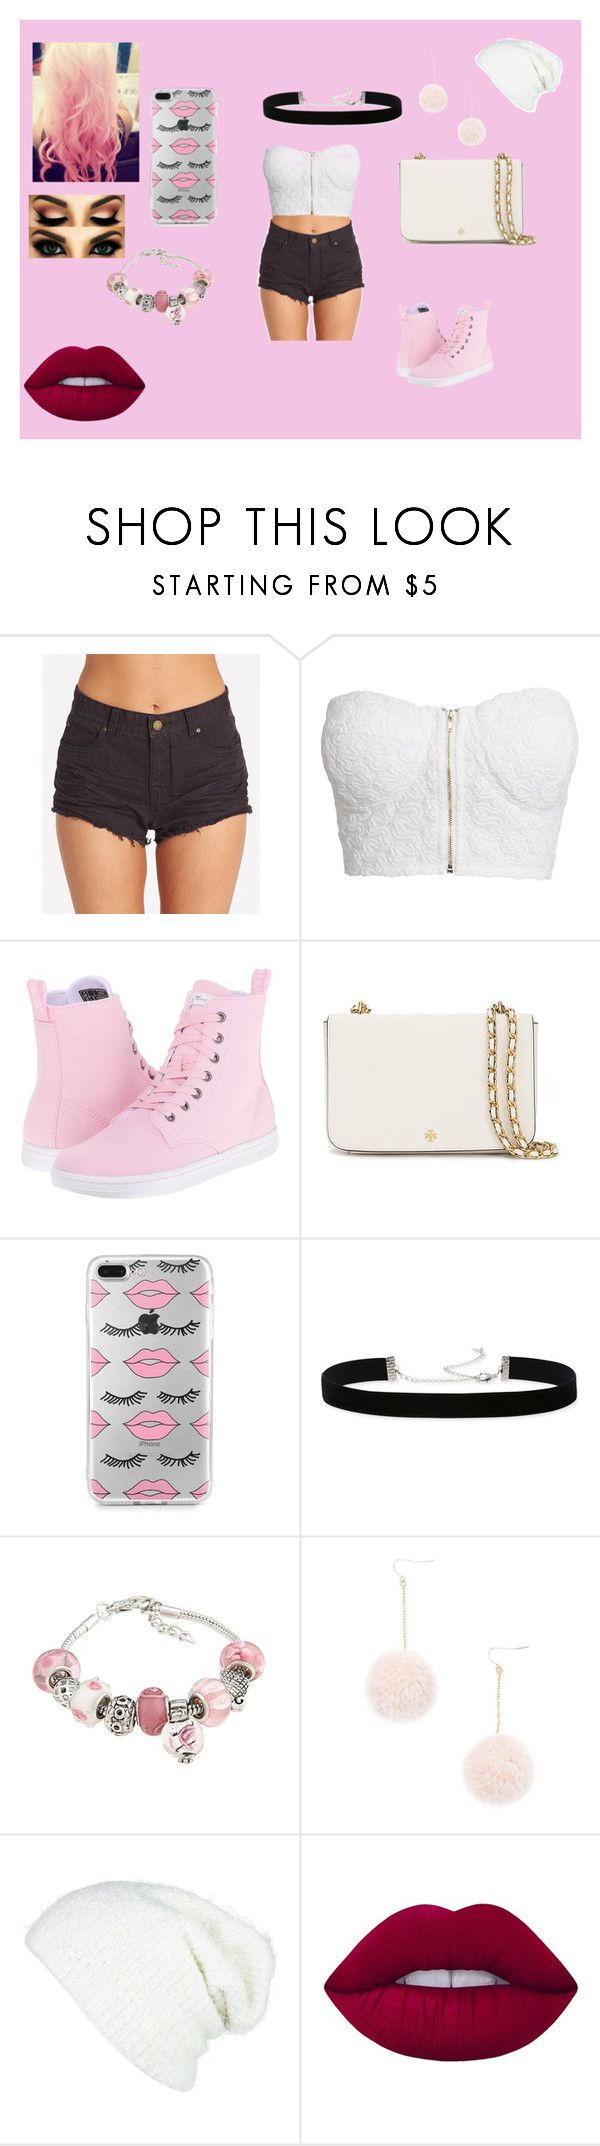 """aicia"" by analuizam-ferreira-rbd on Polyvore featuring beleza, Billabong, NLY Trend, Dr. Martens, Tory Burch, 2028, La Preciosa, Forever 21, Cotton Candy e Free People"